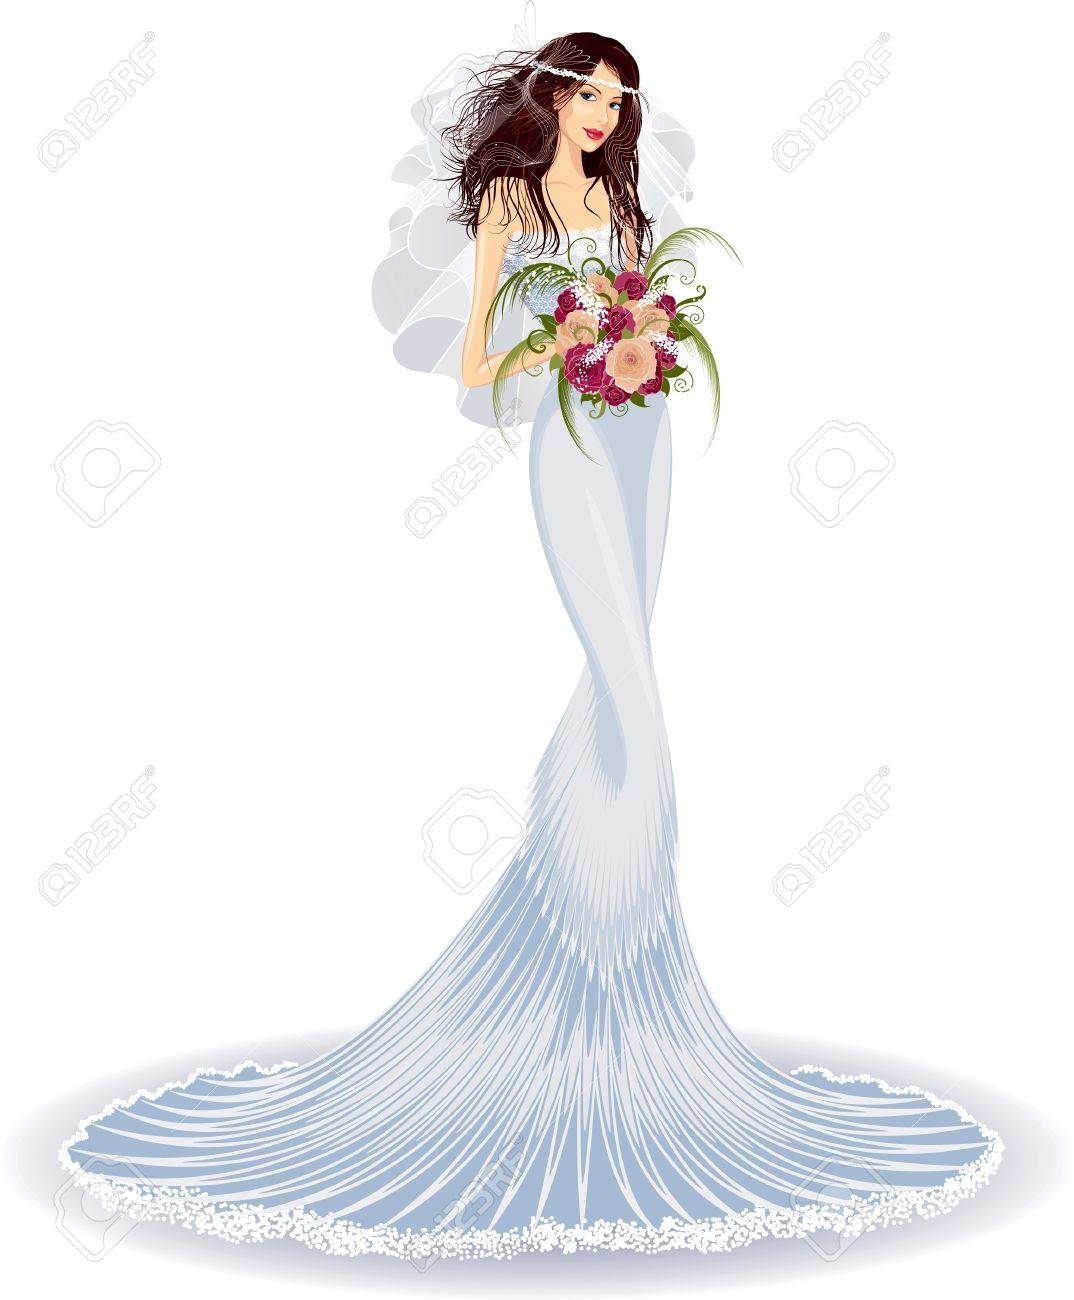 Beautiful bride in wedding dress with bouquet of roses Stock Vector - 9216004